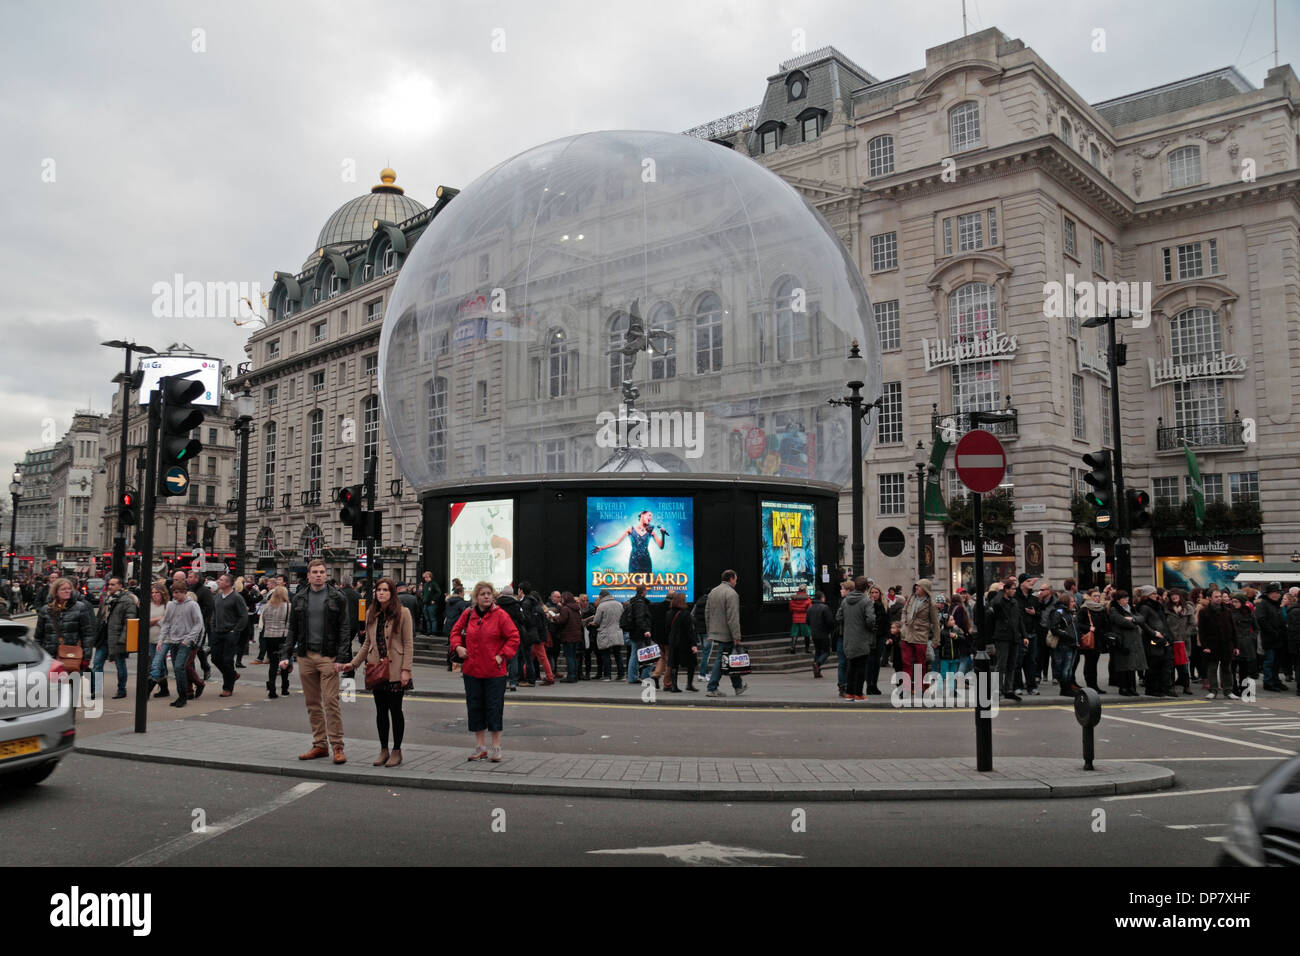 Clear plastic dome covering the statue of Anteros (it is NOT Eros) in Piccadilly Circus, London, W1, UK. - Stock Image